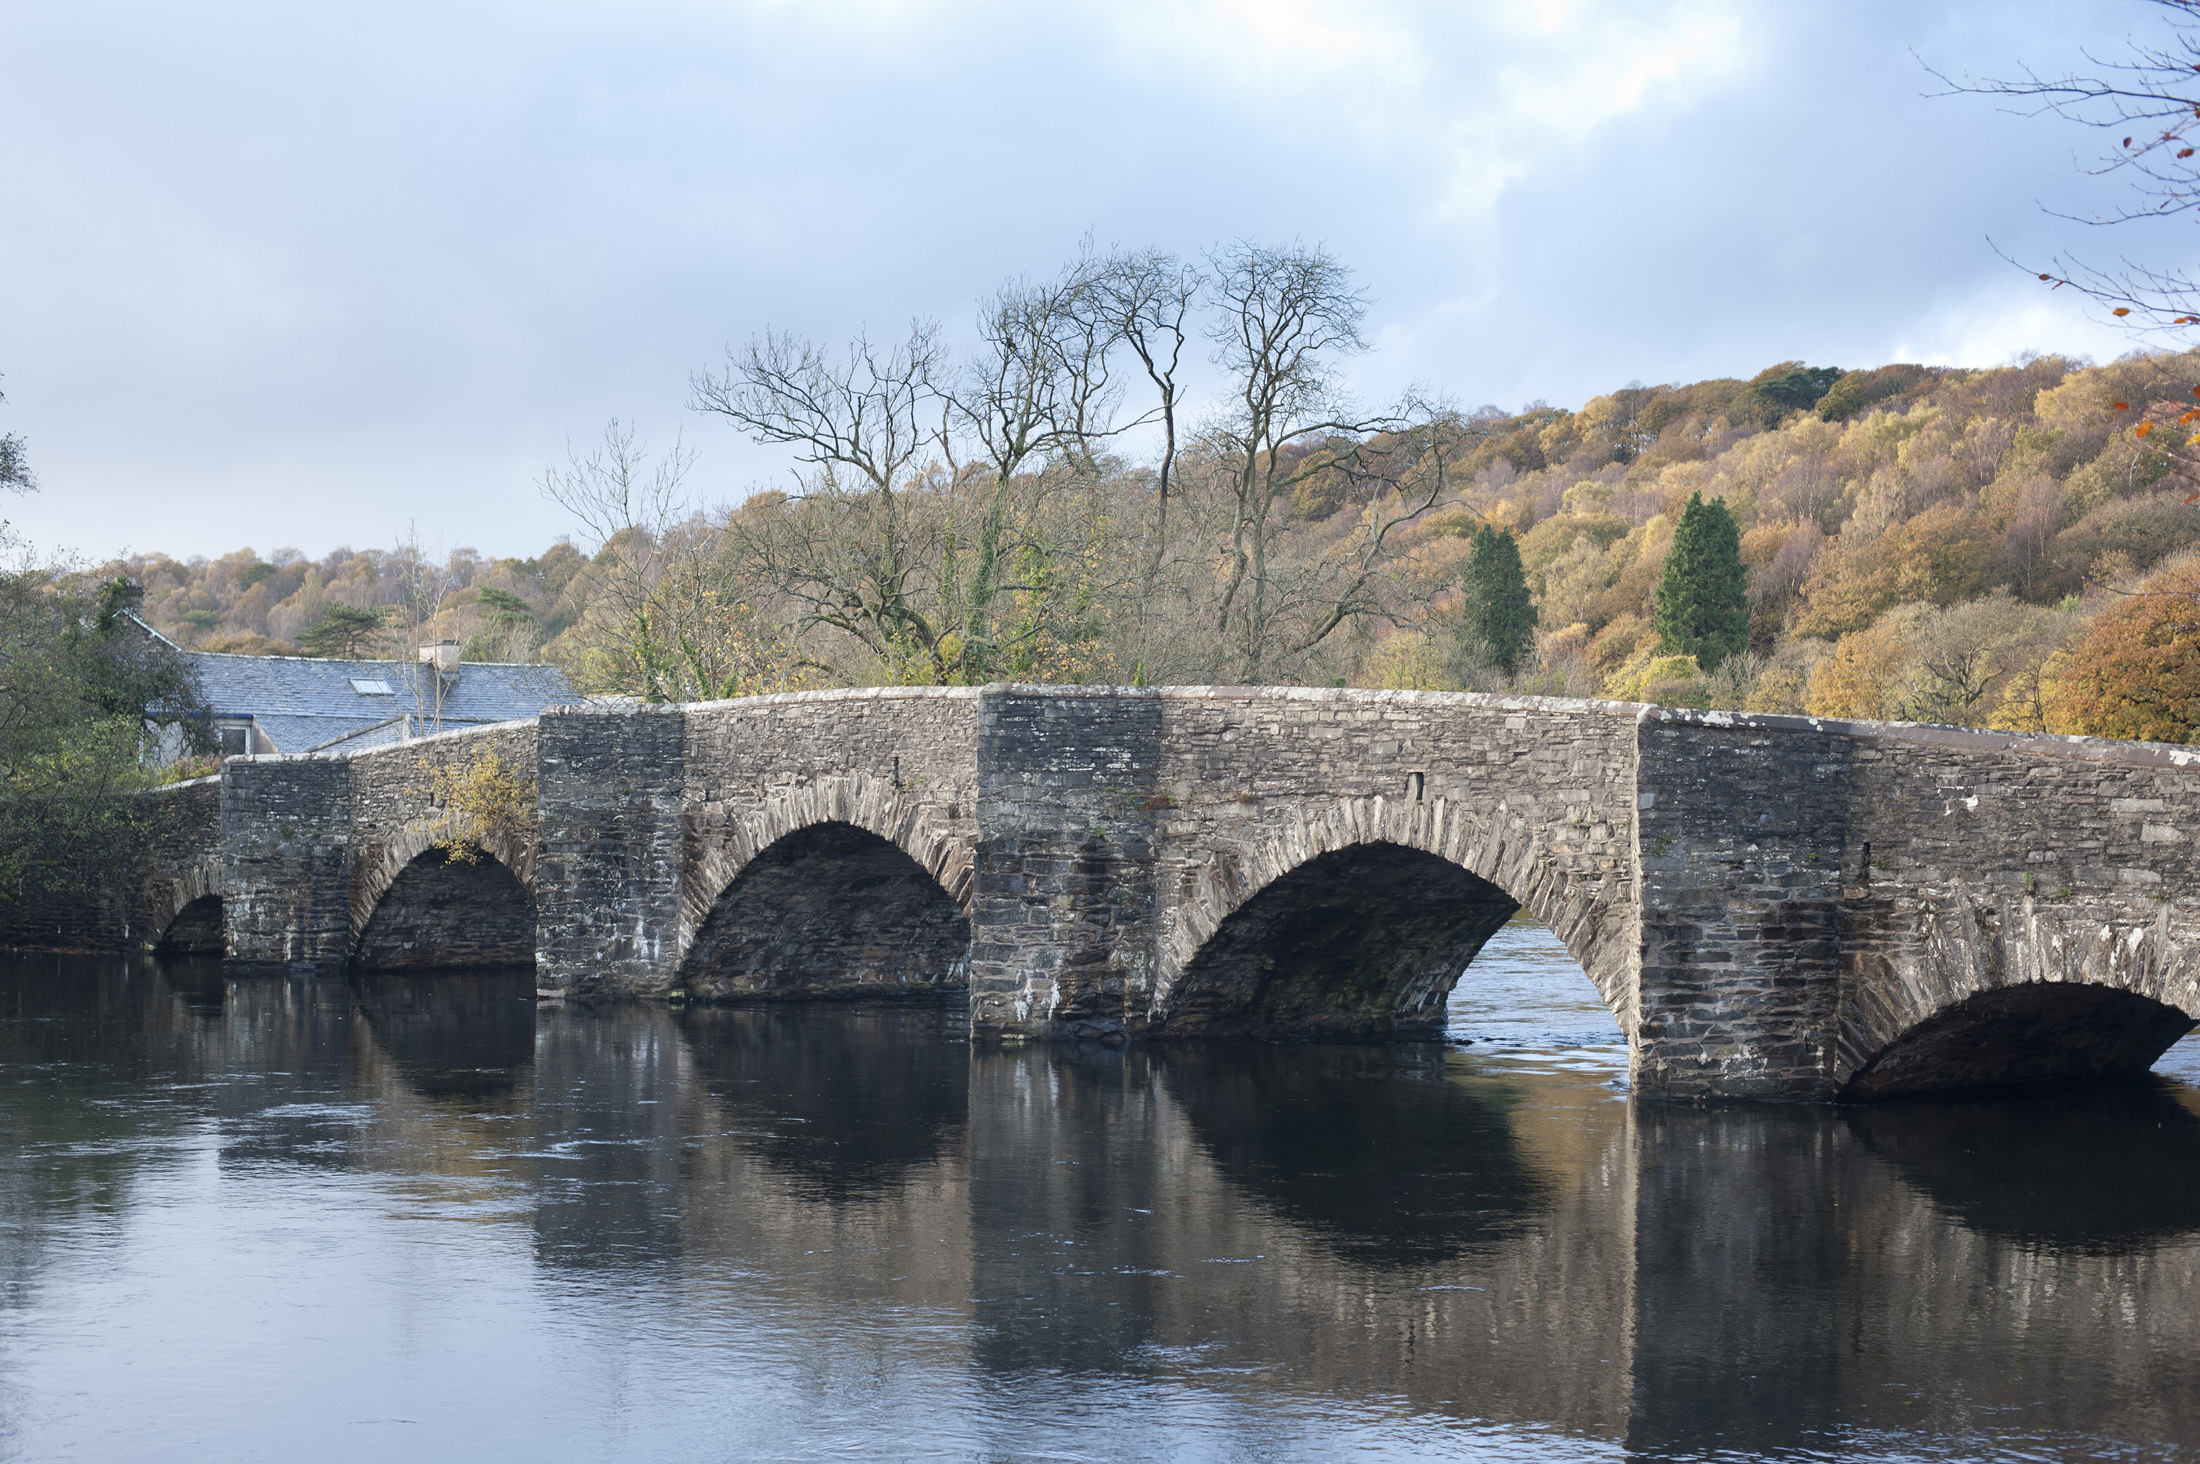 Newby Bridge in Cumbria, England on the River Leven, close to the southern end of Windermere in the Lake District